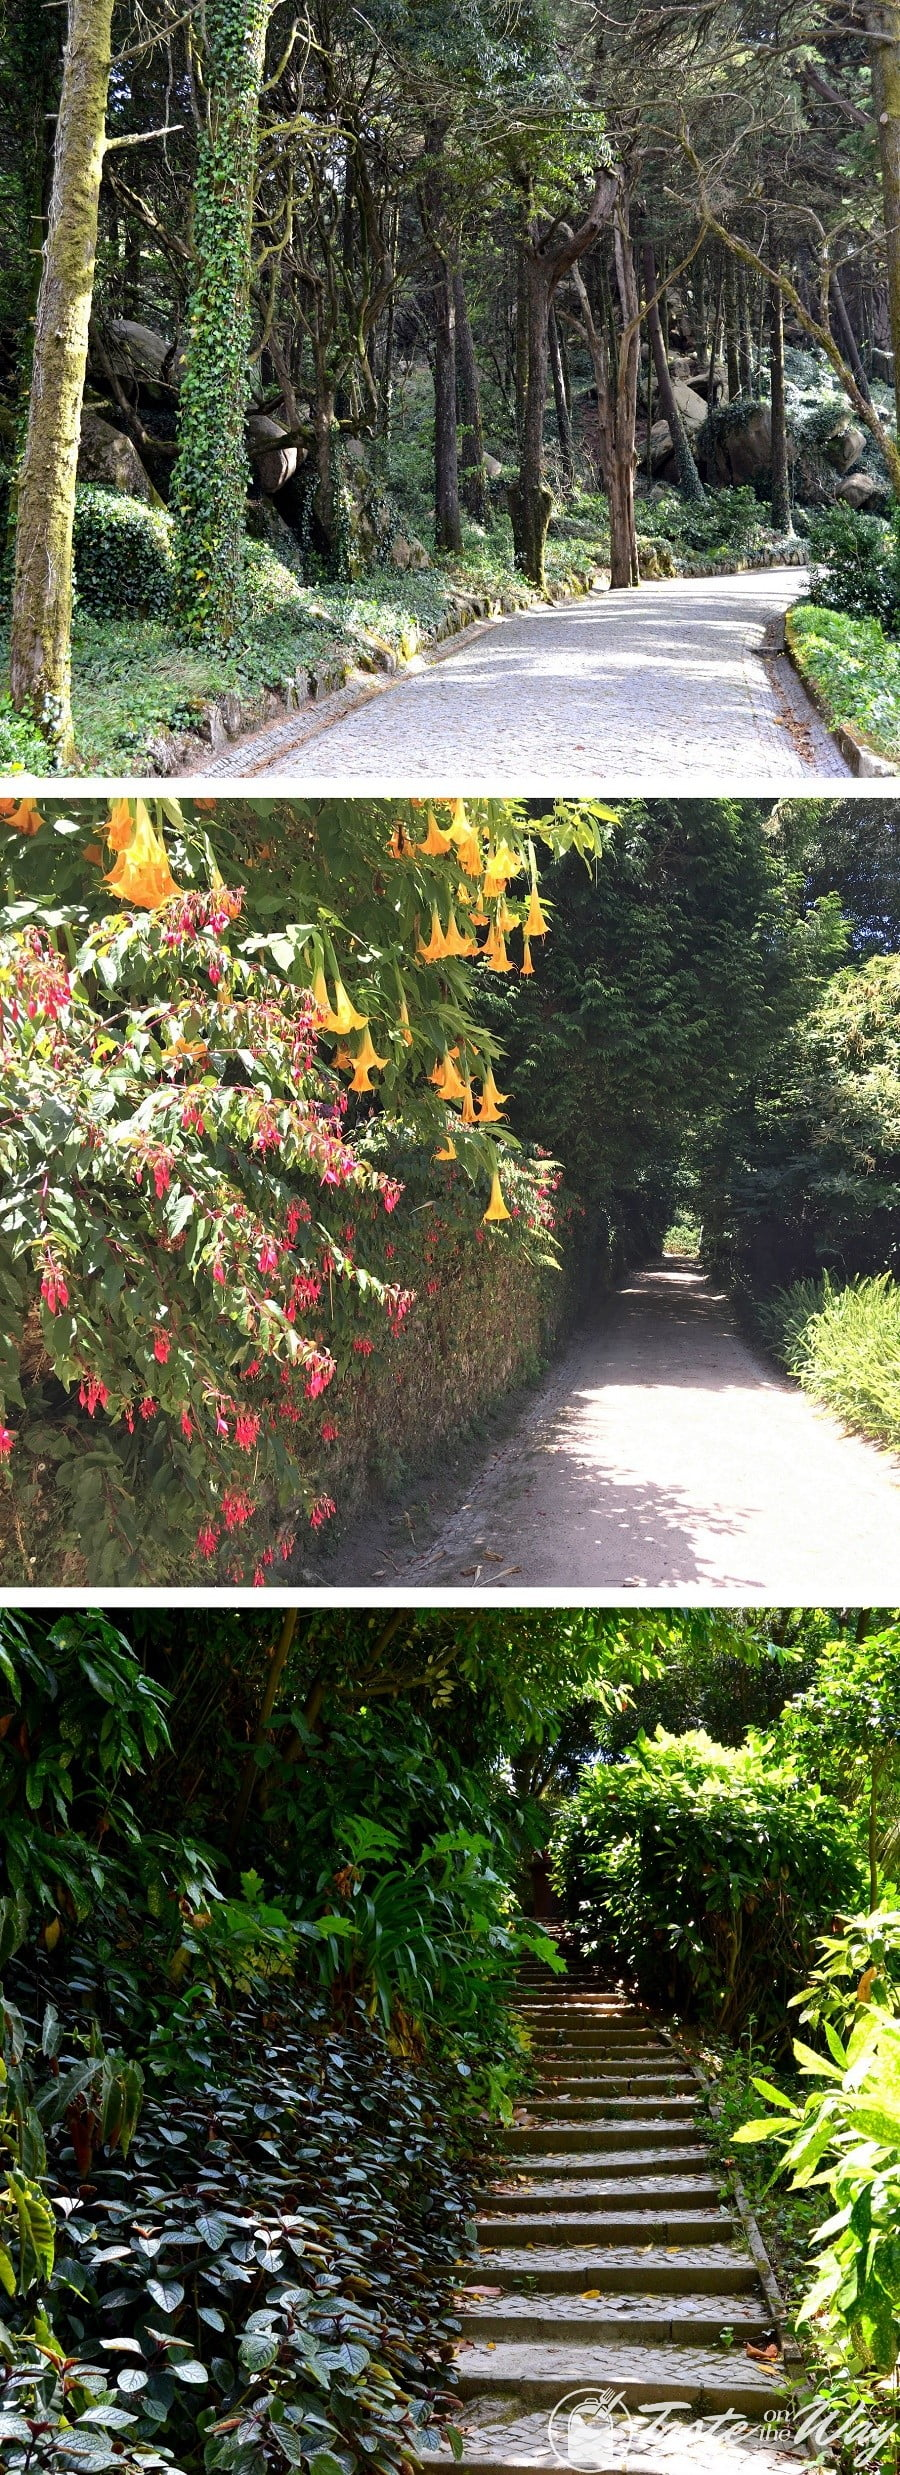 One of the top things to do on a #daytrip to #Sintra, #Portugal is to take a relaxing walk in the lush parks and gardens. Check out for more! #travel #photography @tasteontheway